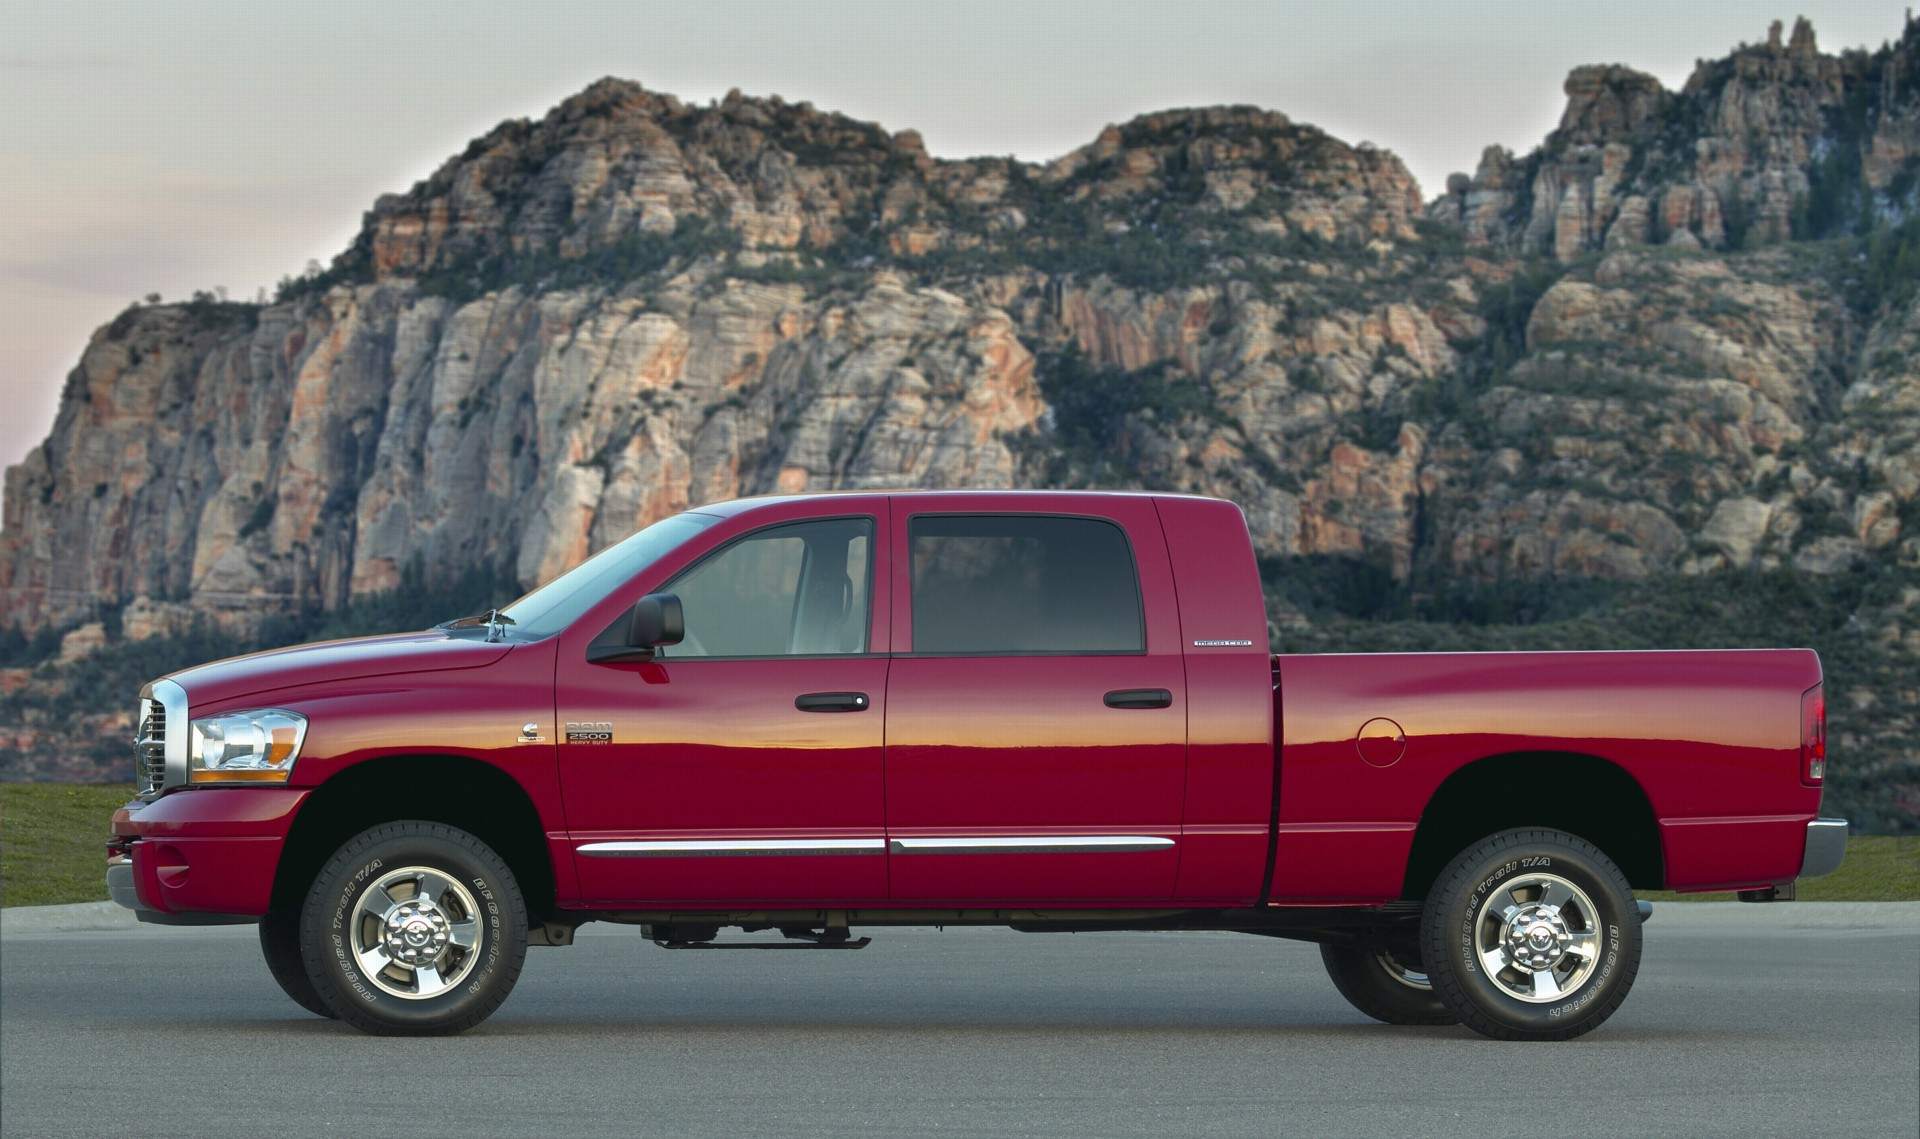 2007 Dodge Ram 2500 History Pictures Value Auction Sales Radio Upgrade Research And News